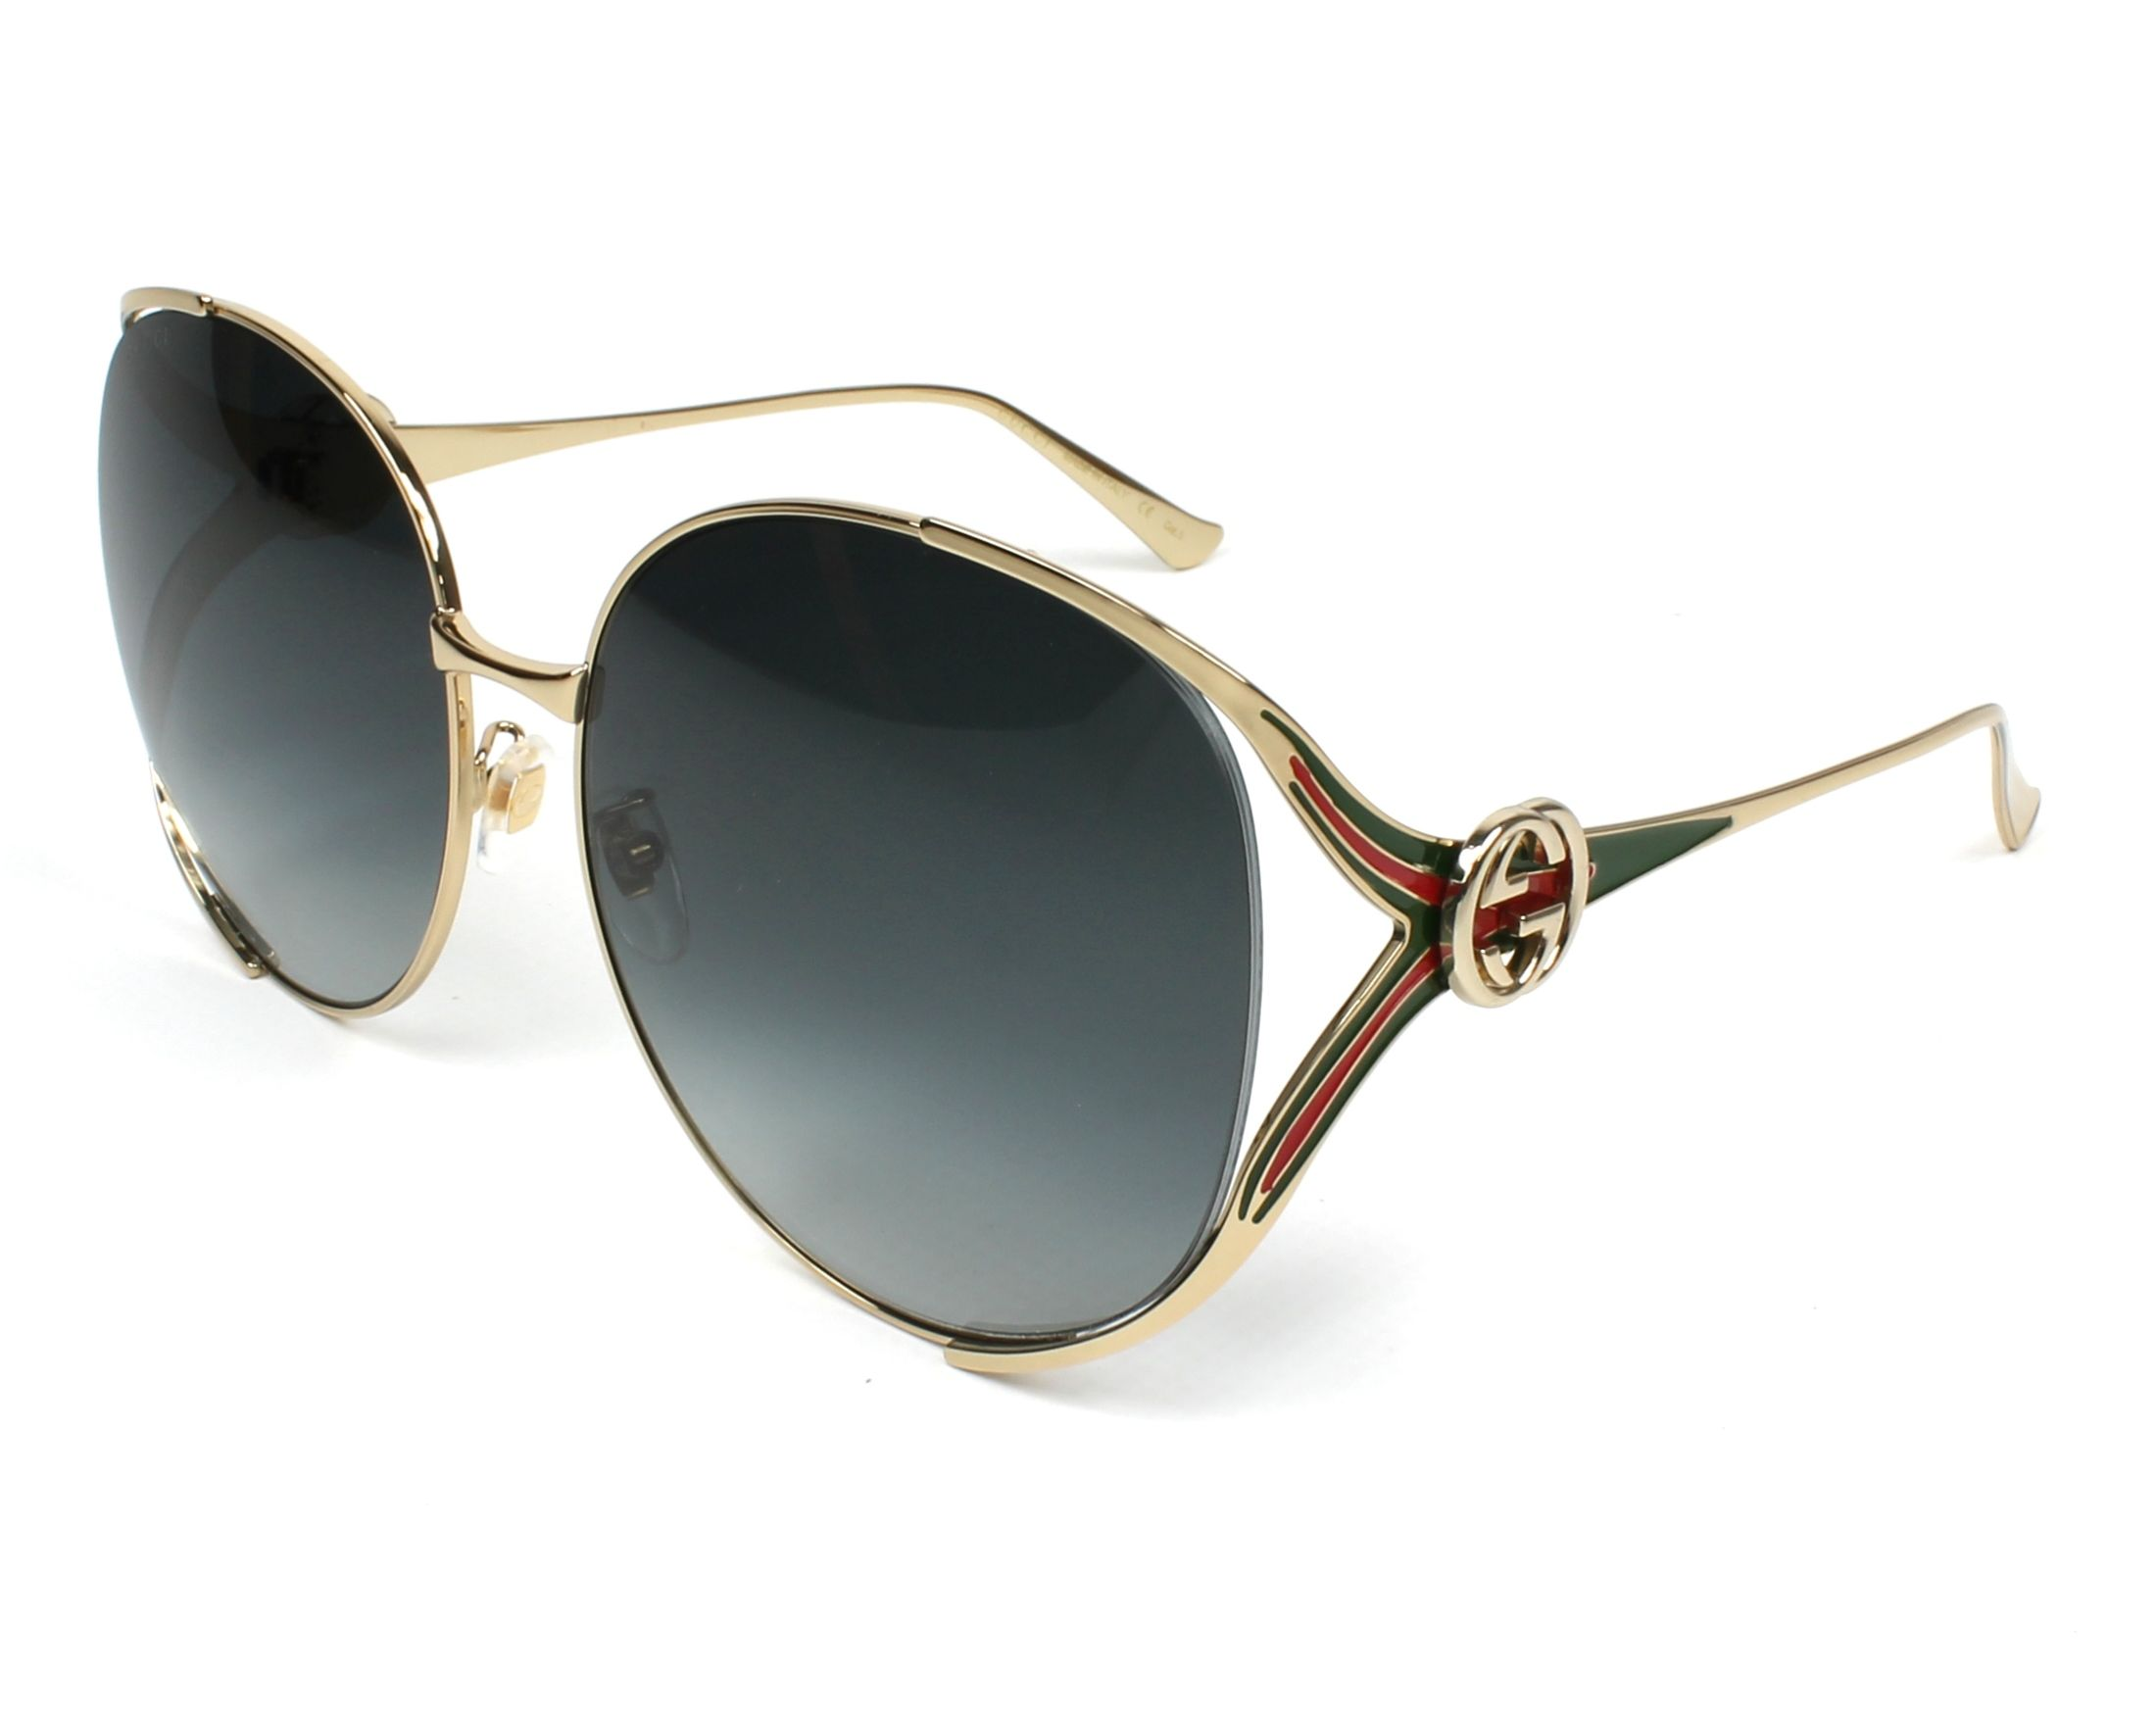 Gucci Sunglasses Gold With Grey Lenses Gg 0225 S 001